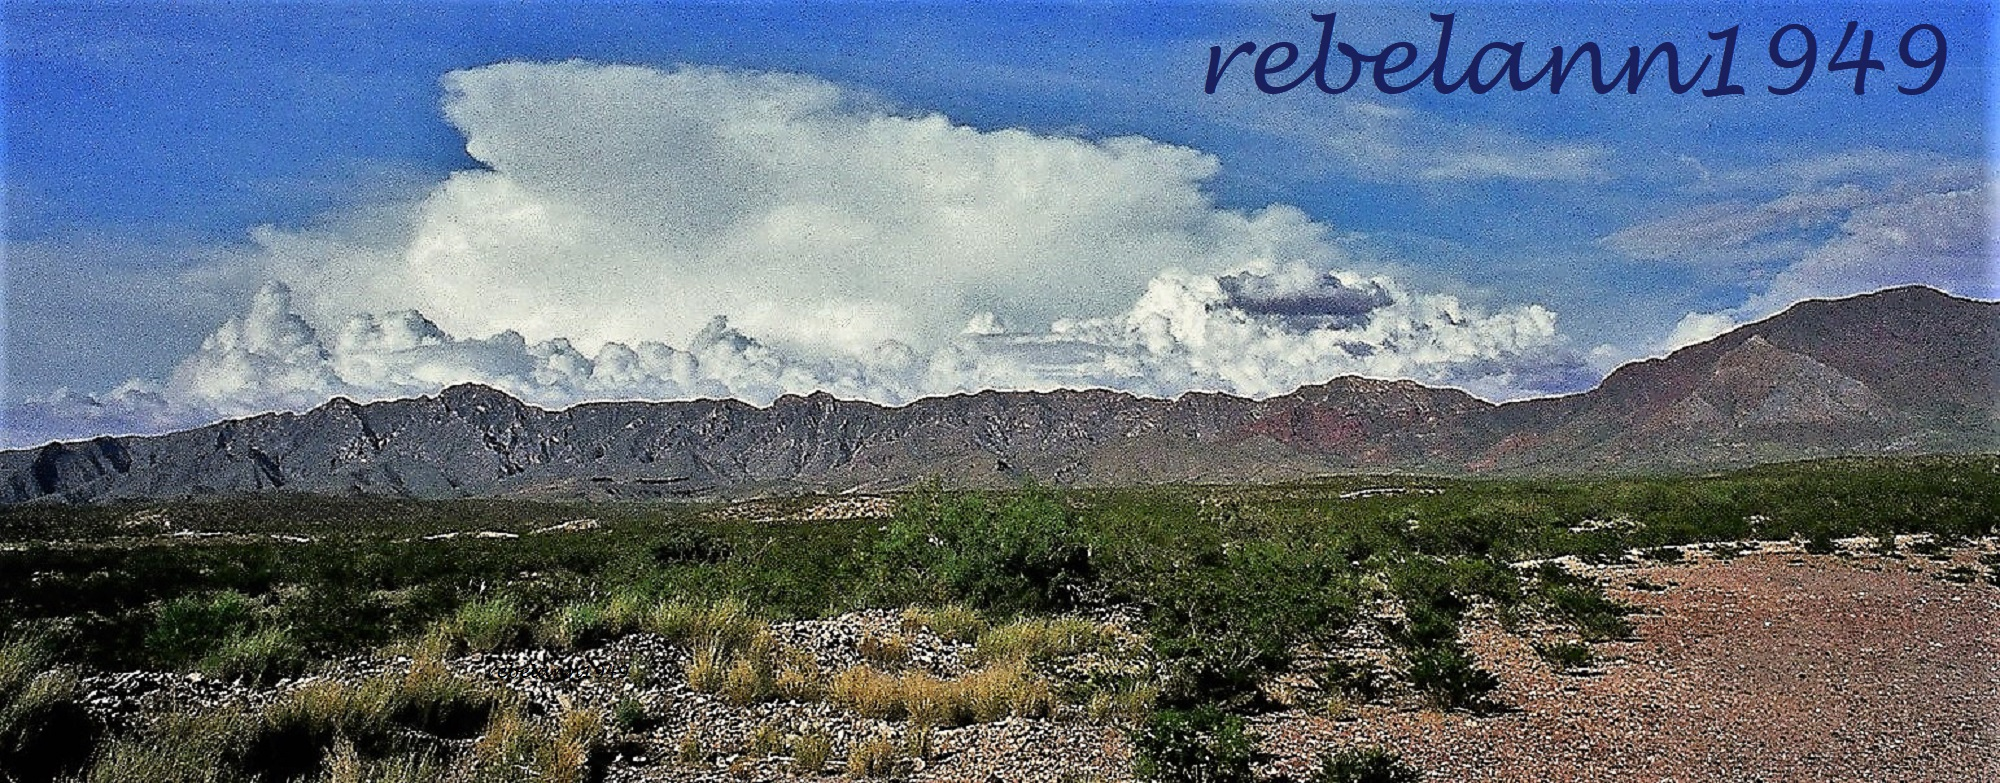 A shot I took of the Franklin Mountains many years ago